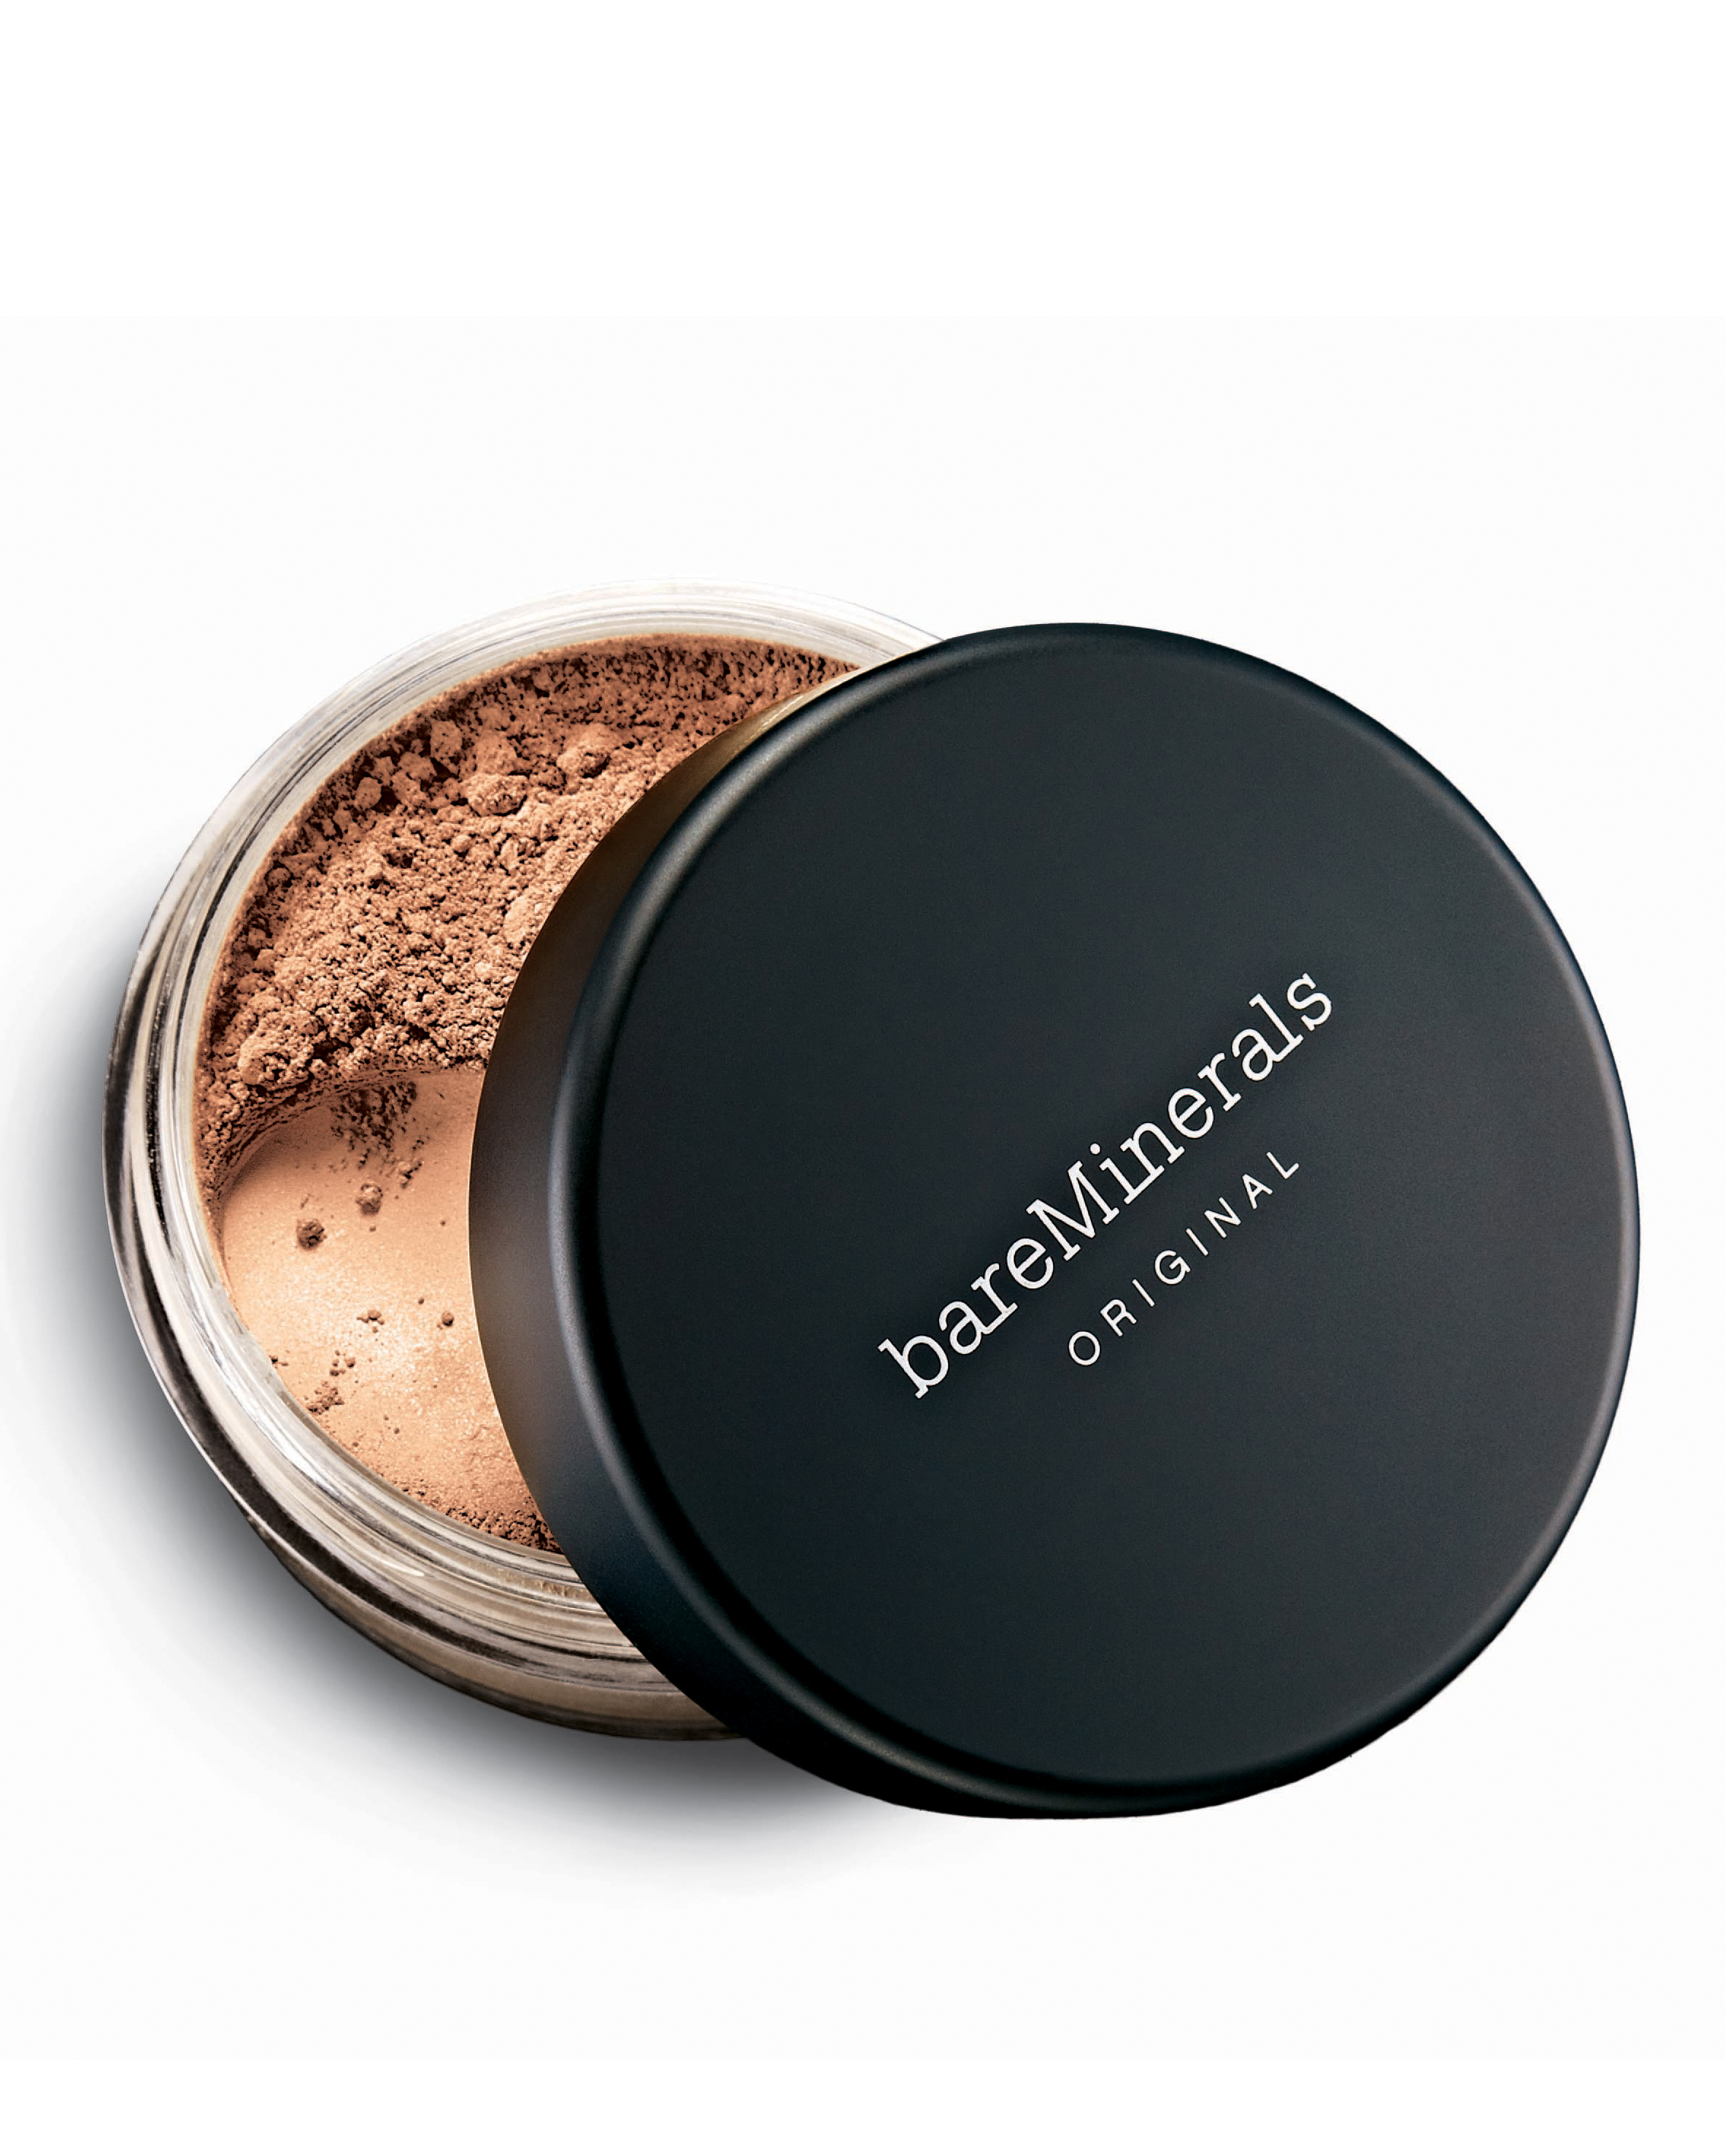 Multitalented Powder